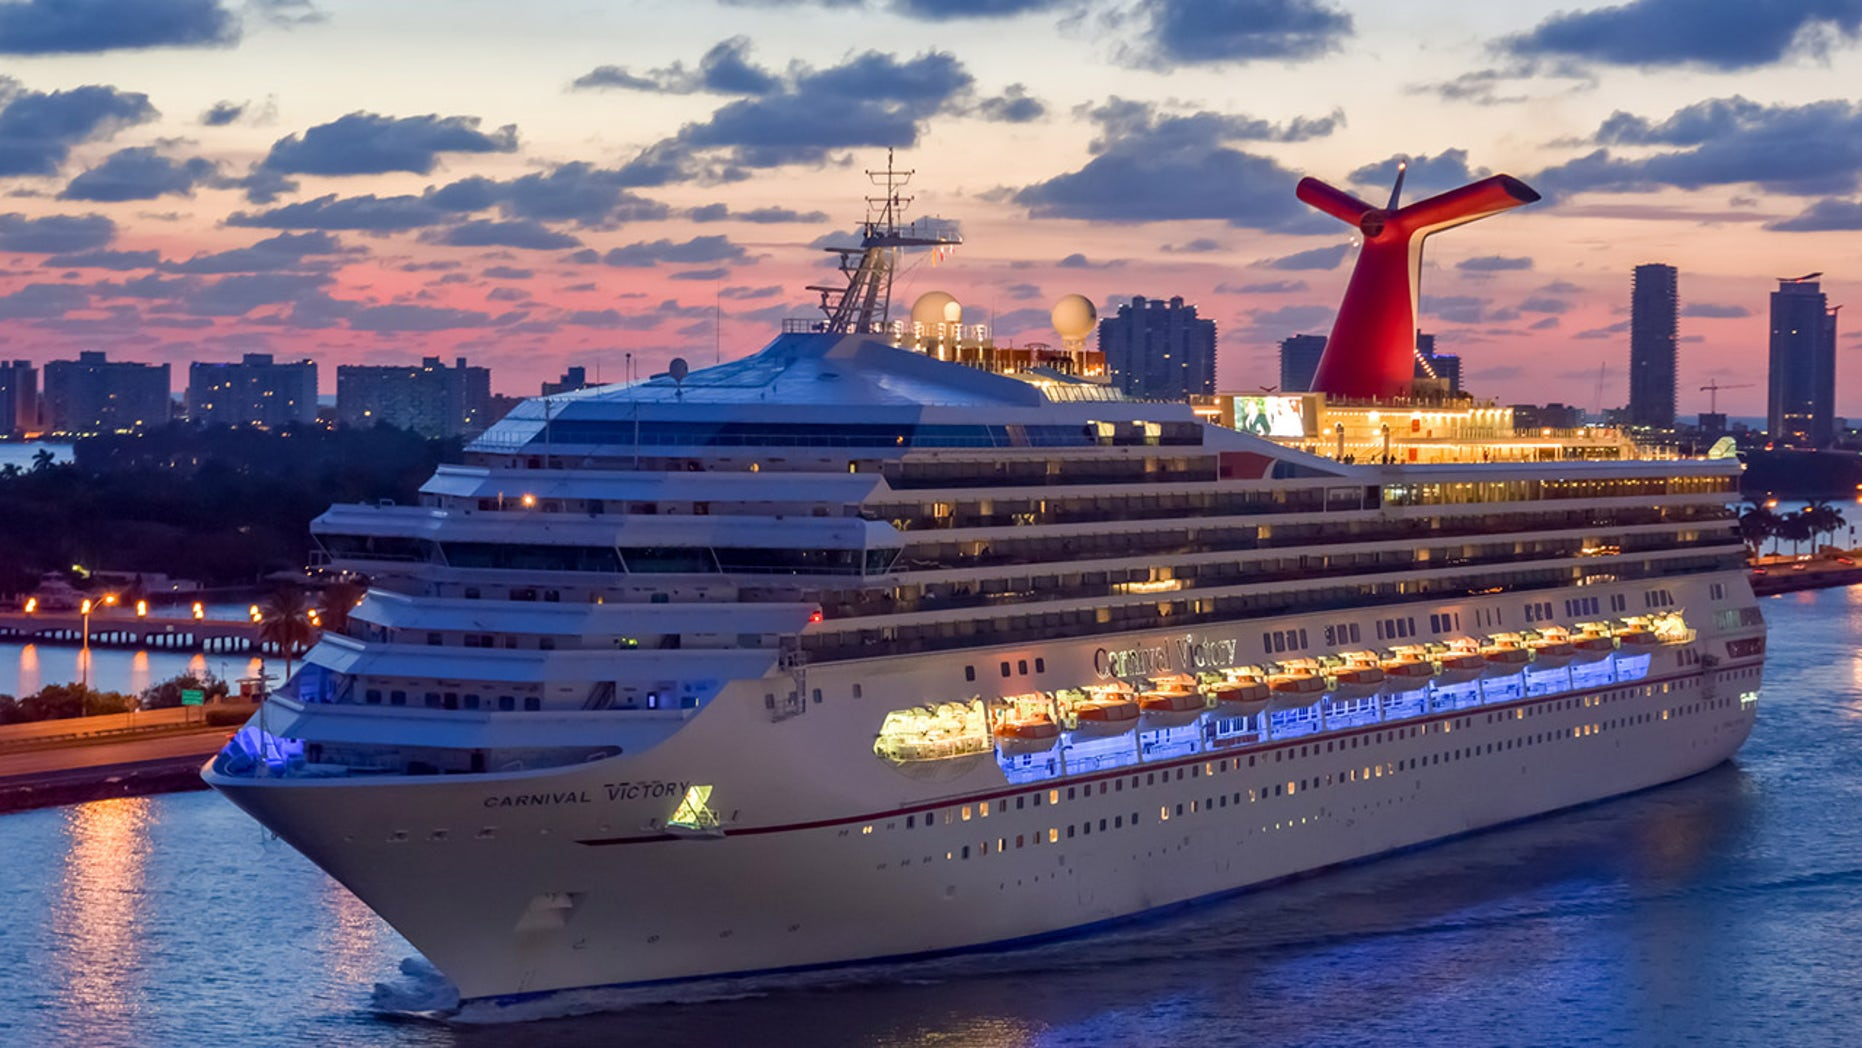 Victory guest Thomas McElhany went overboard at some point during the ship's voyage back to Miami after a four-night cruise that made stops in Key West and Cozumel.